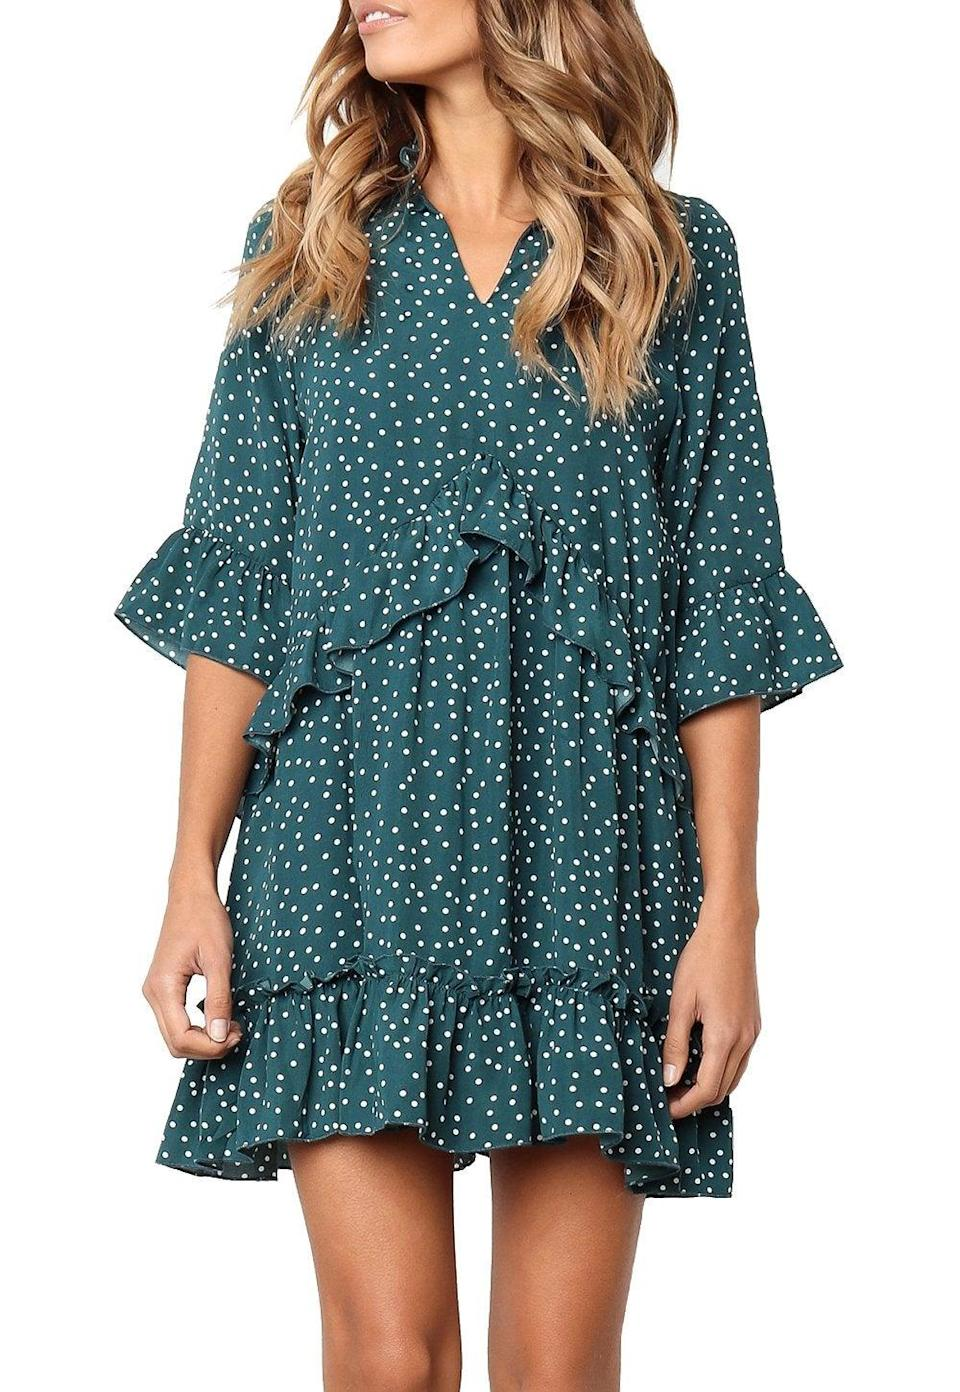 """<br><br><strong>Mitilly</strong> V Neck Ruffle Polka Dot Swing Dress, $, available at <a href=""""https://amzn.to/2X7sP2d"""" rel=""""nofollow noopener"""" target=""""_blank"""" data-ylk=""""slk:Amazon Fashion"""" class=""""link rapid-noclick-resp"""">Amazon Fashion</a>"""